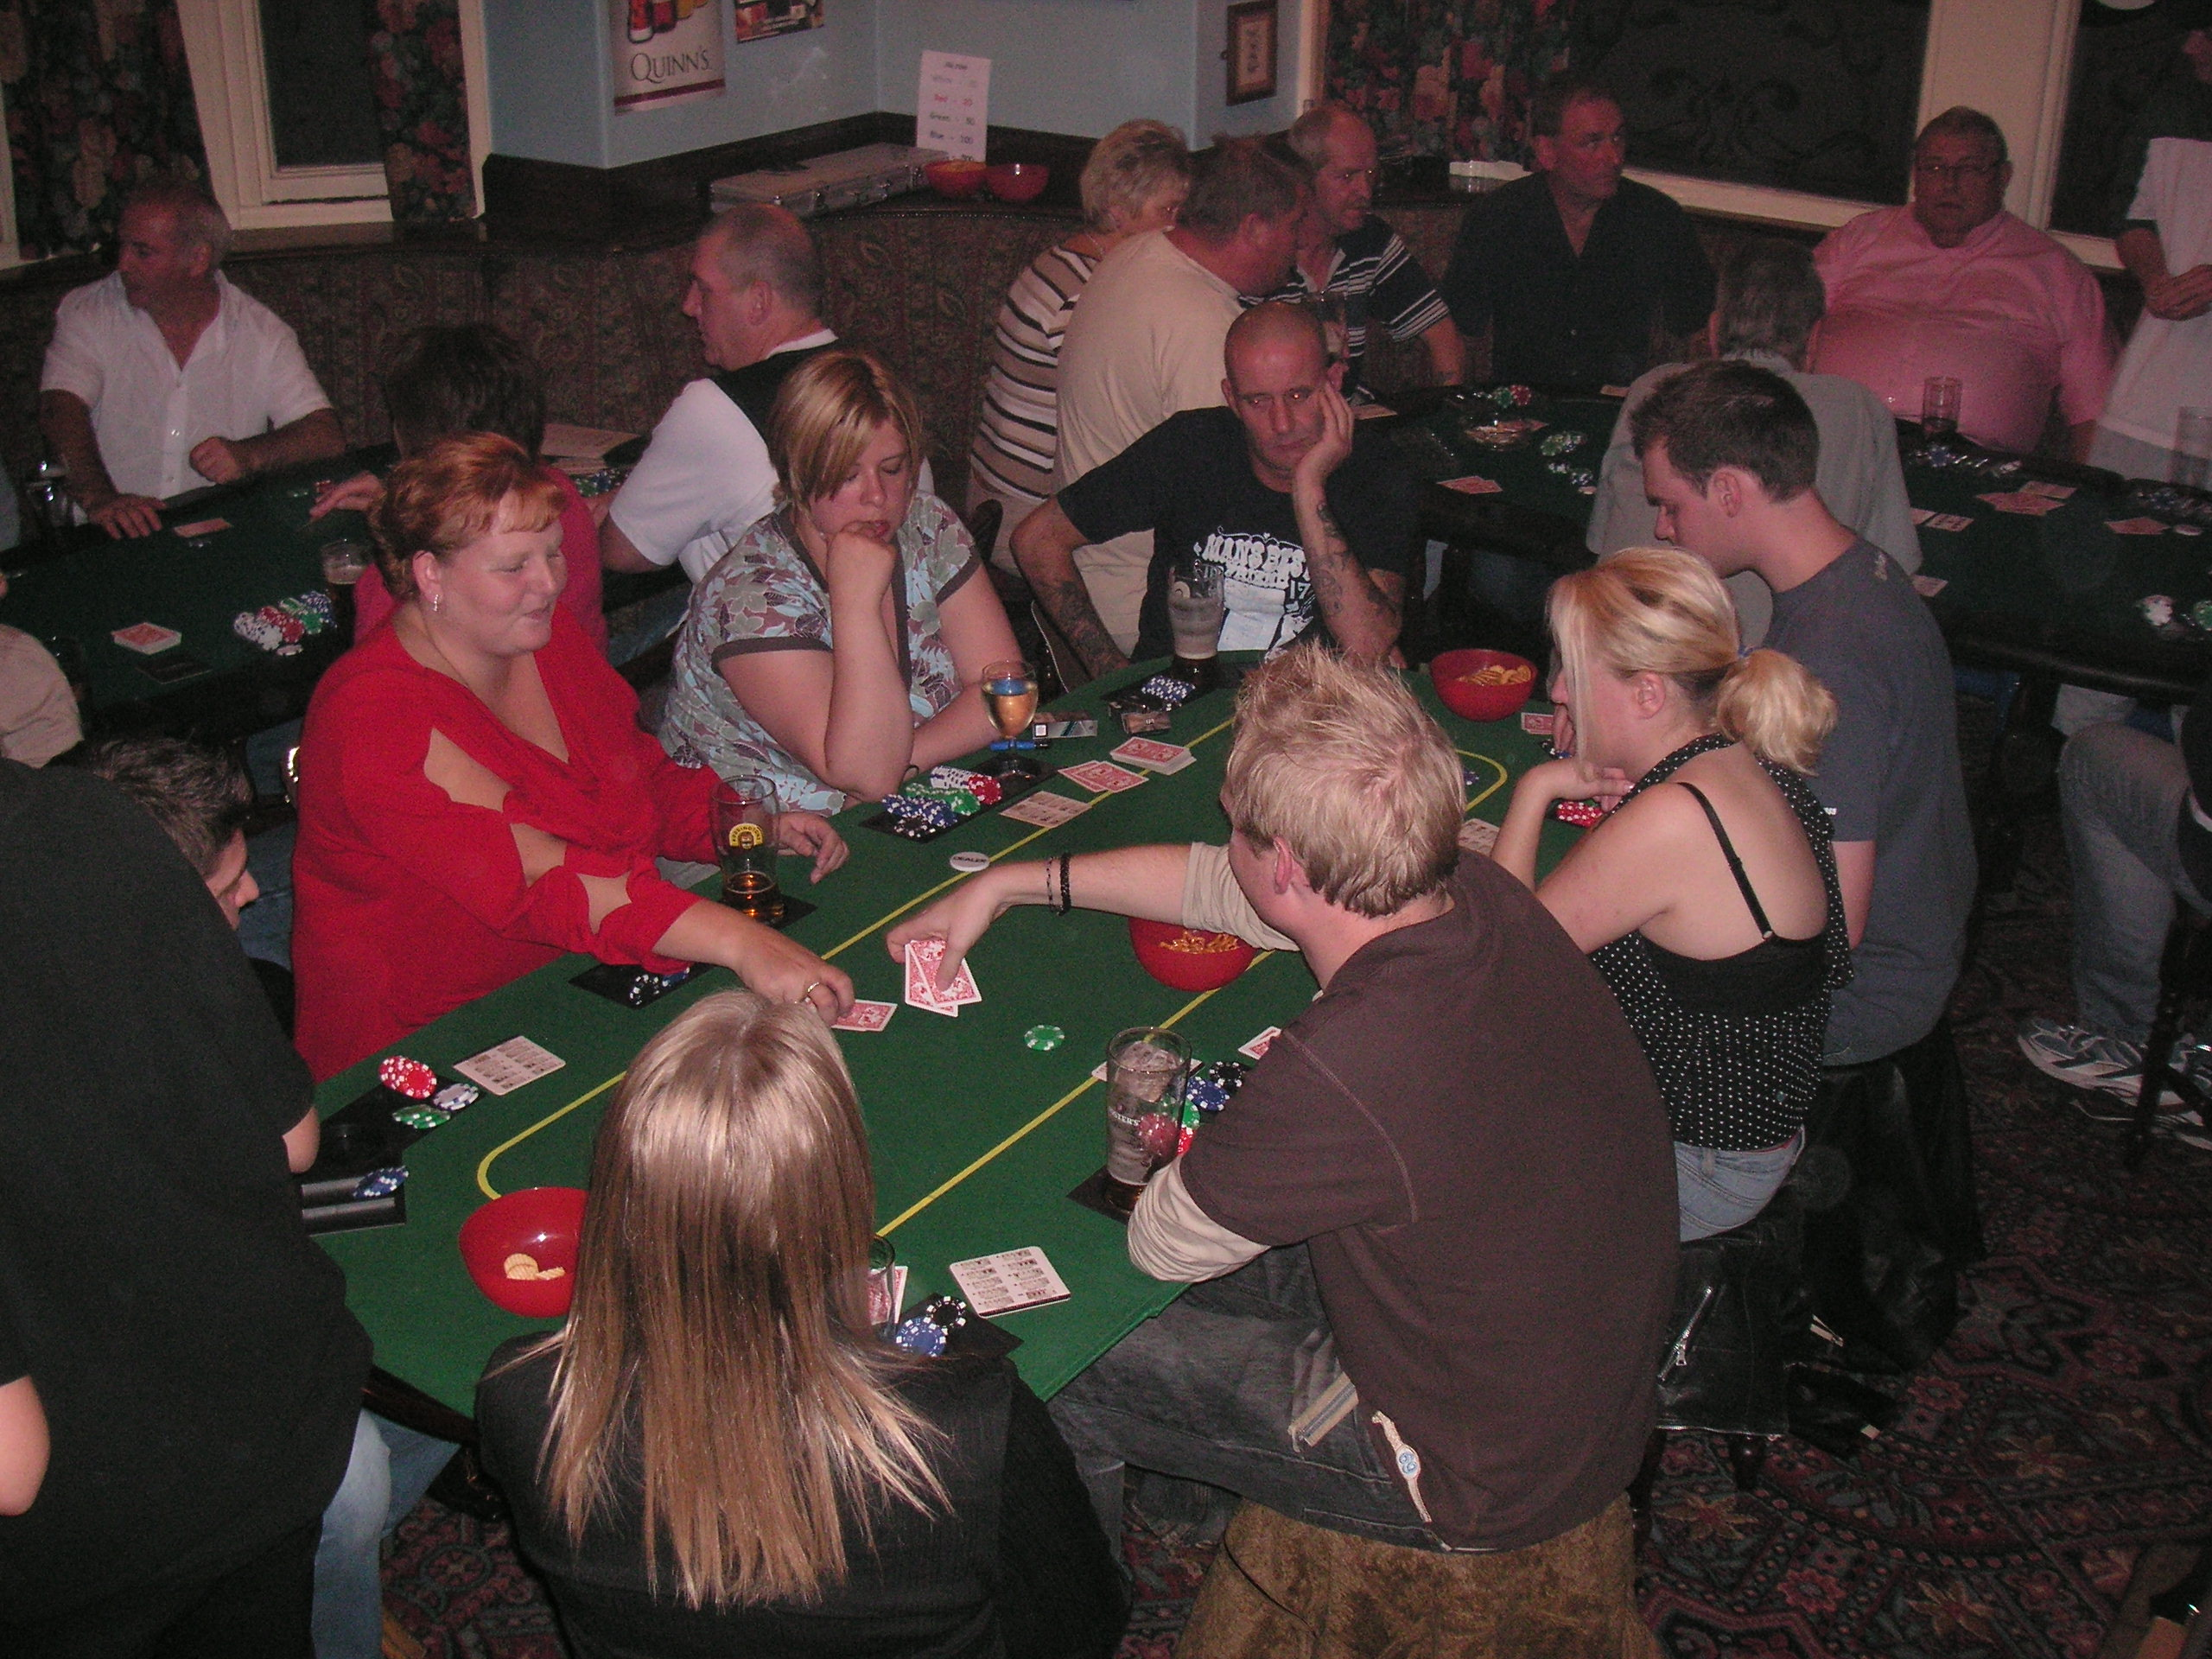 Poker In The Pub - Fun Casino Hire - R Leisure Hire Ltd - Areas we cover for Fun Casino Hire include Lancashire, Cumbria, Cheshire, Merseyside, Manchester, Yorkshire, Lancaster, Leeds, Kendal, Windemere, Barrow-in-furness, Carslile, Preston, Blackpool, Wigan, Bolton, Blackburn and all surrounding areas. Call us for more info.